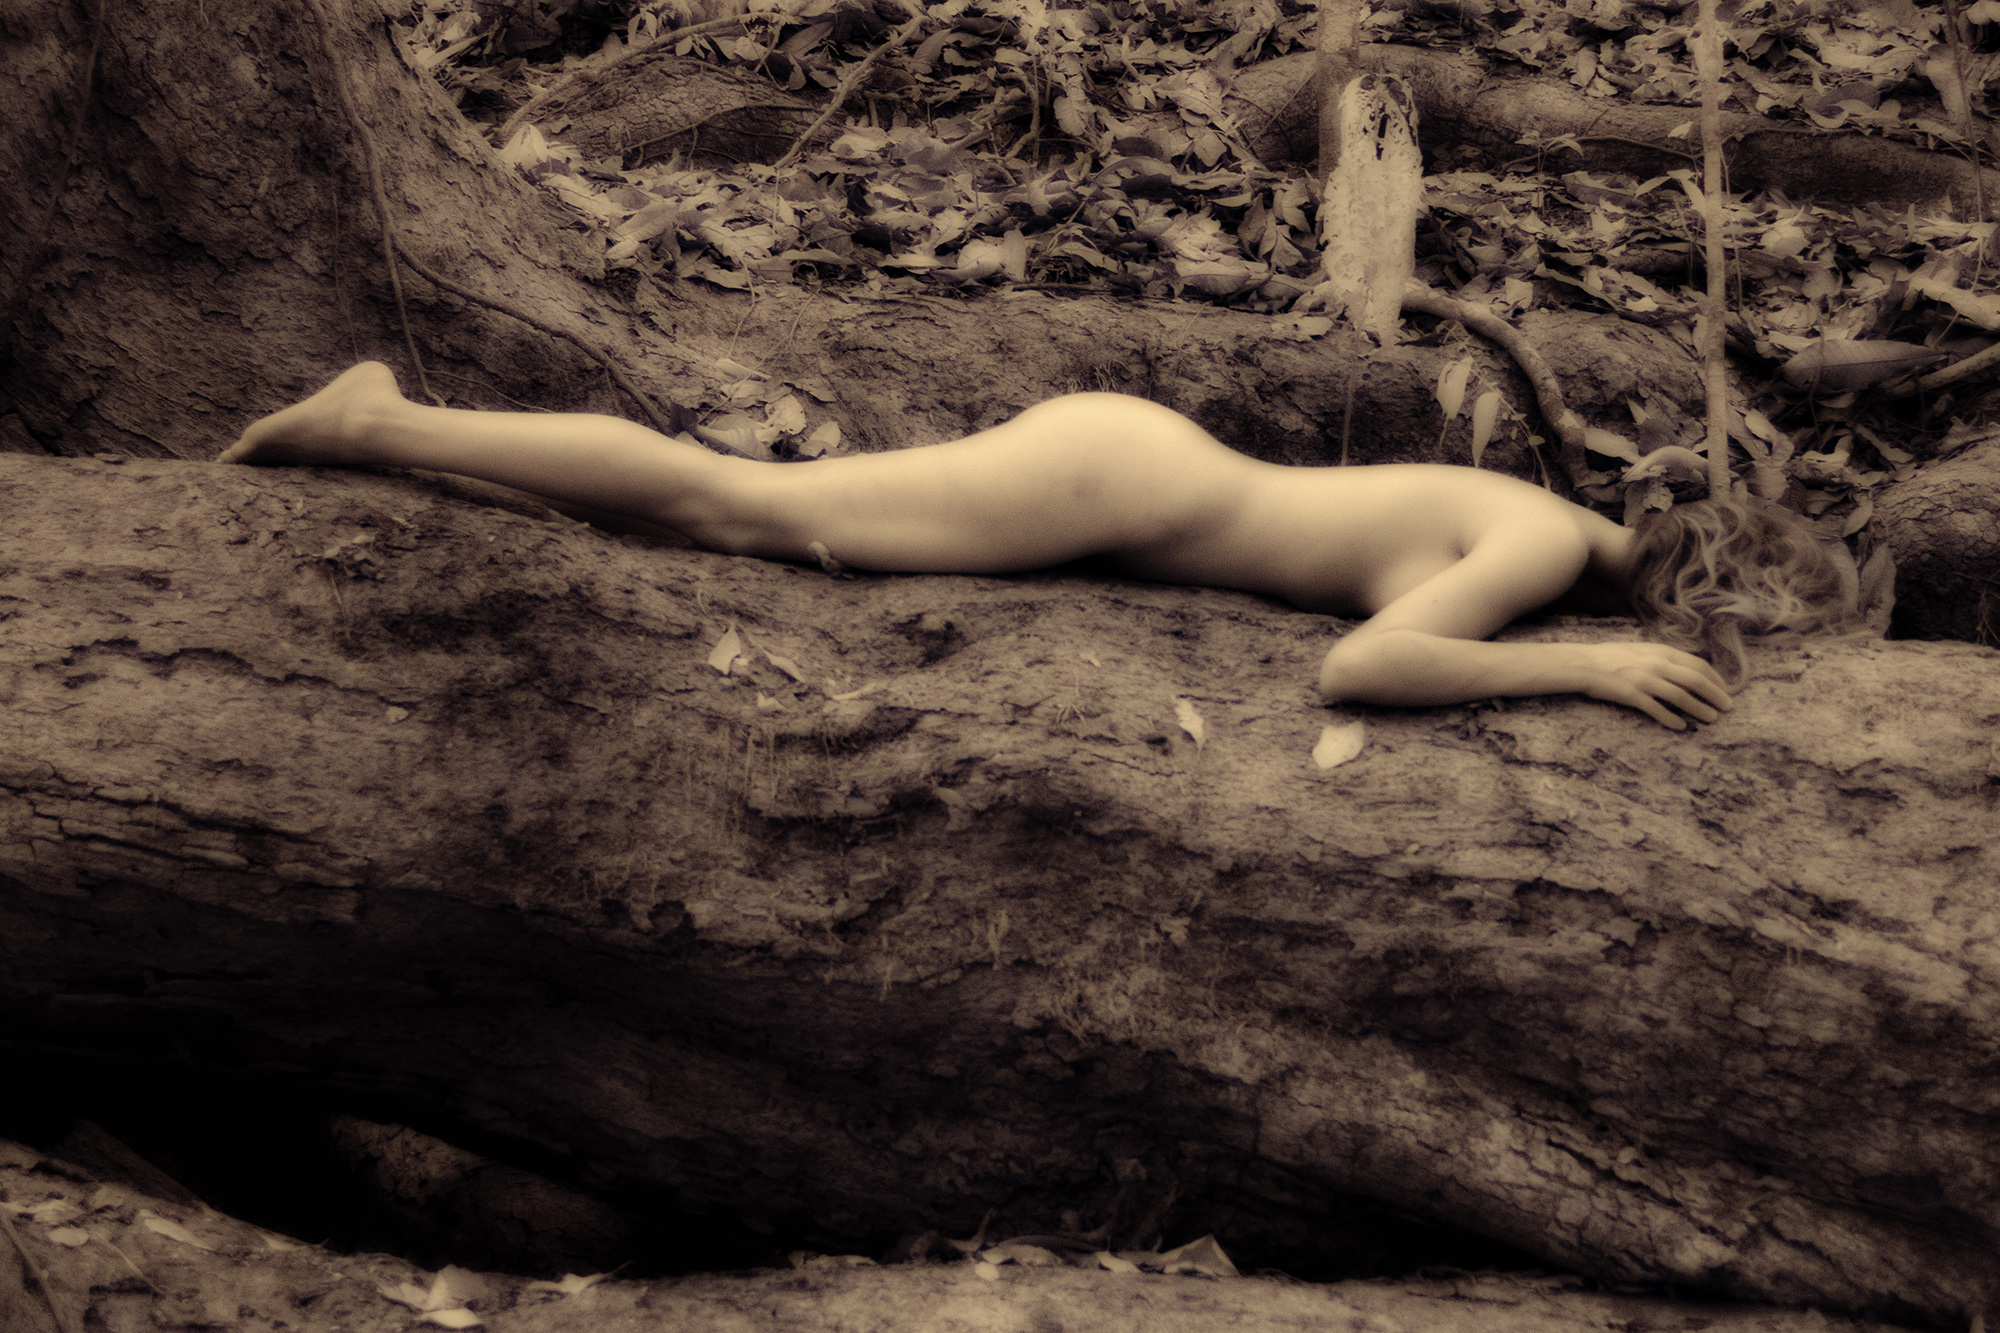 Nude on log